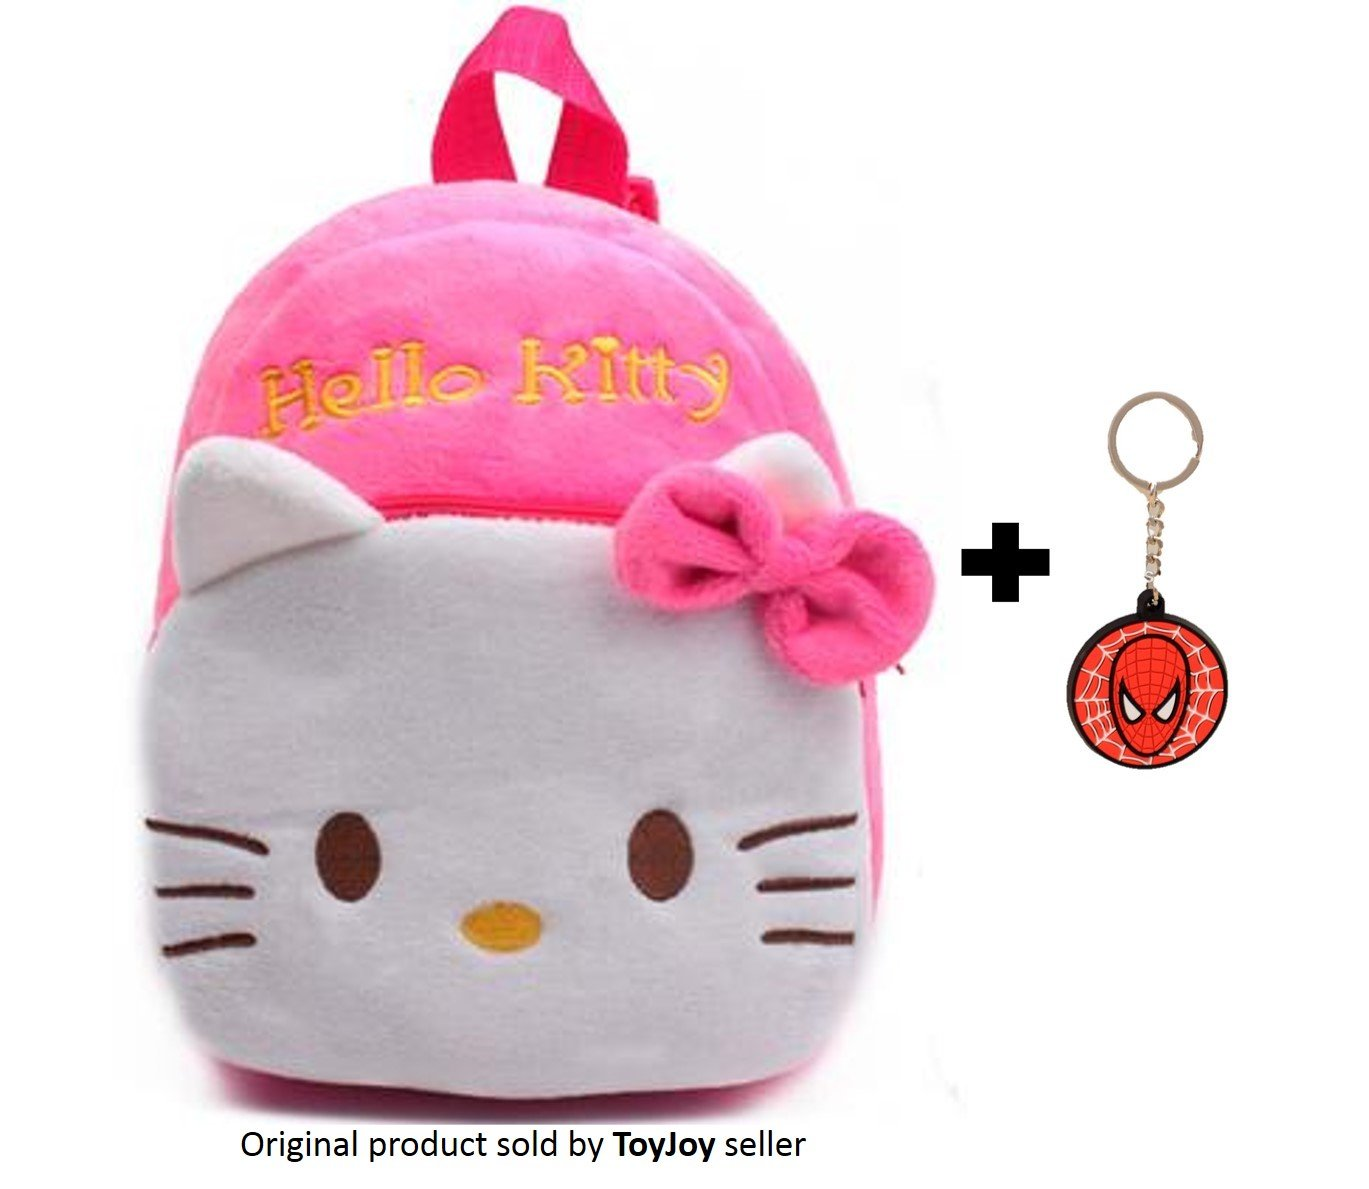 39167dbe3a Buy ToyJoy Hello Kitty school bag 2 compartment 35cm with keychain for  kids girls boys children plush soft bag backpack cartoon bag gift for kids  Online at ...